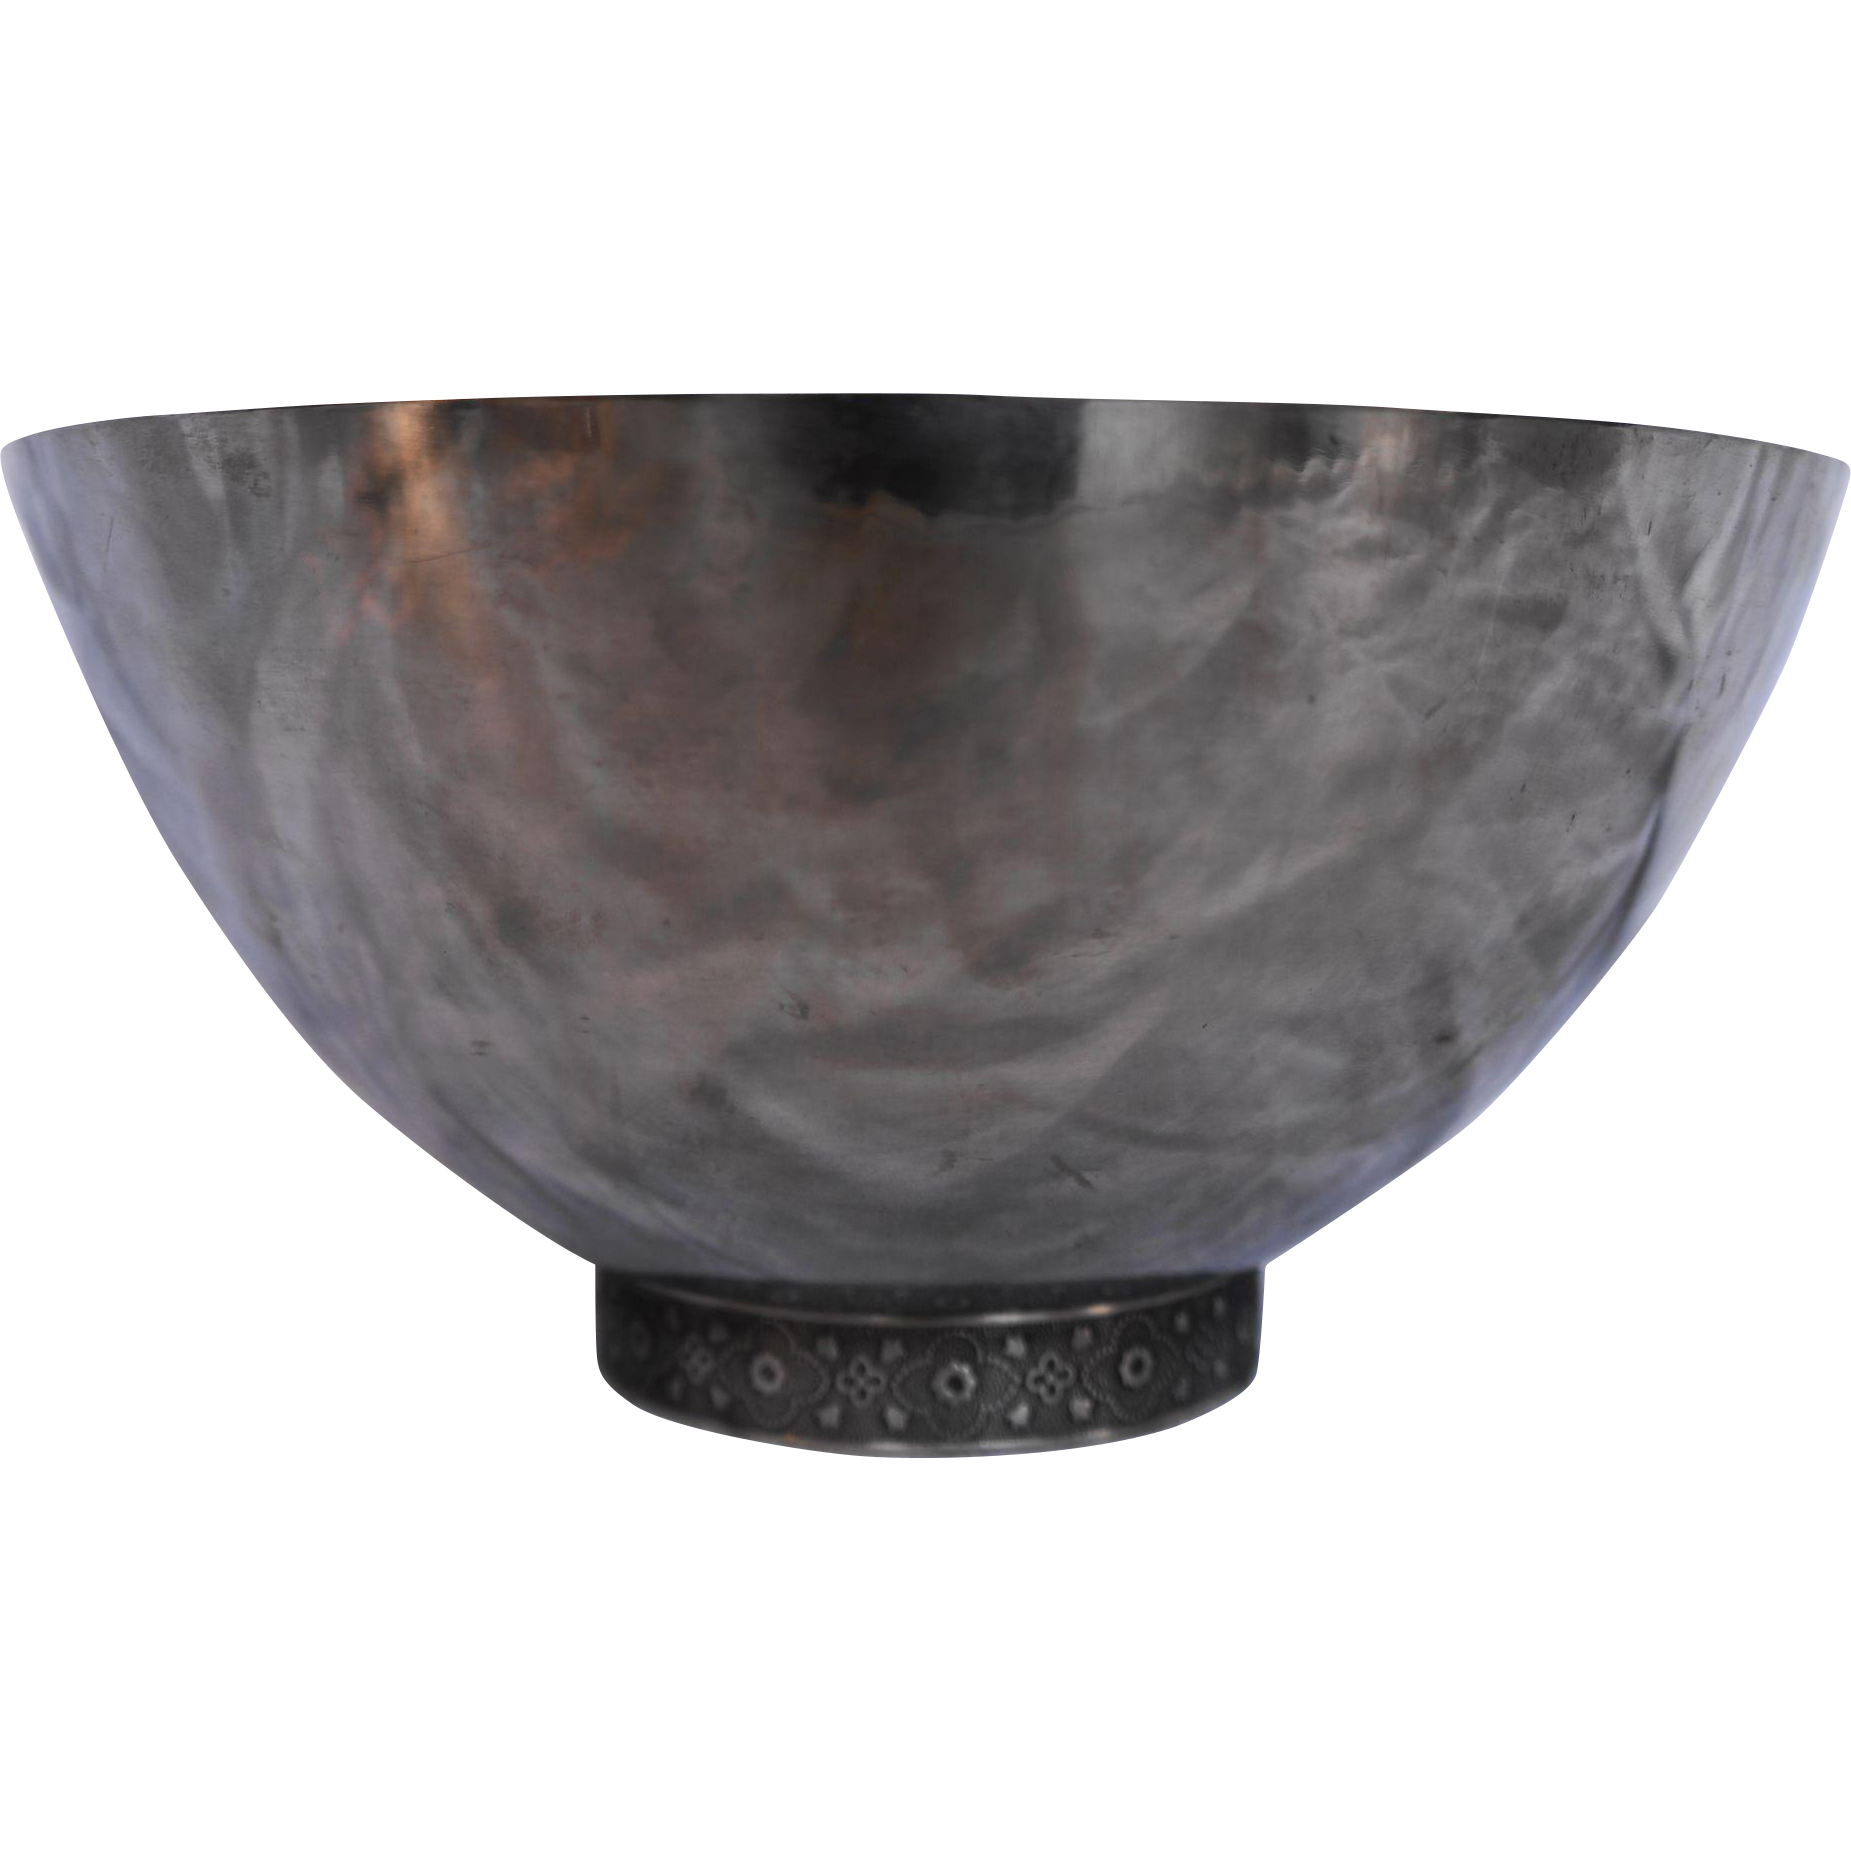 Stainless Steel Japan MidCentury Modern Serving Bowl Floral Band